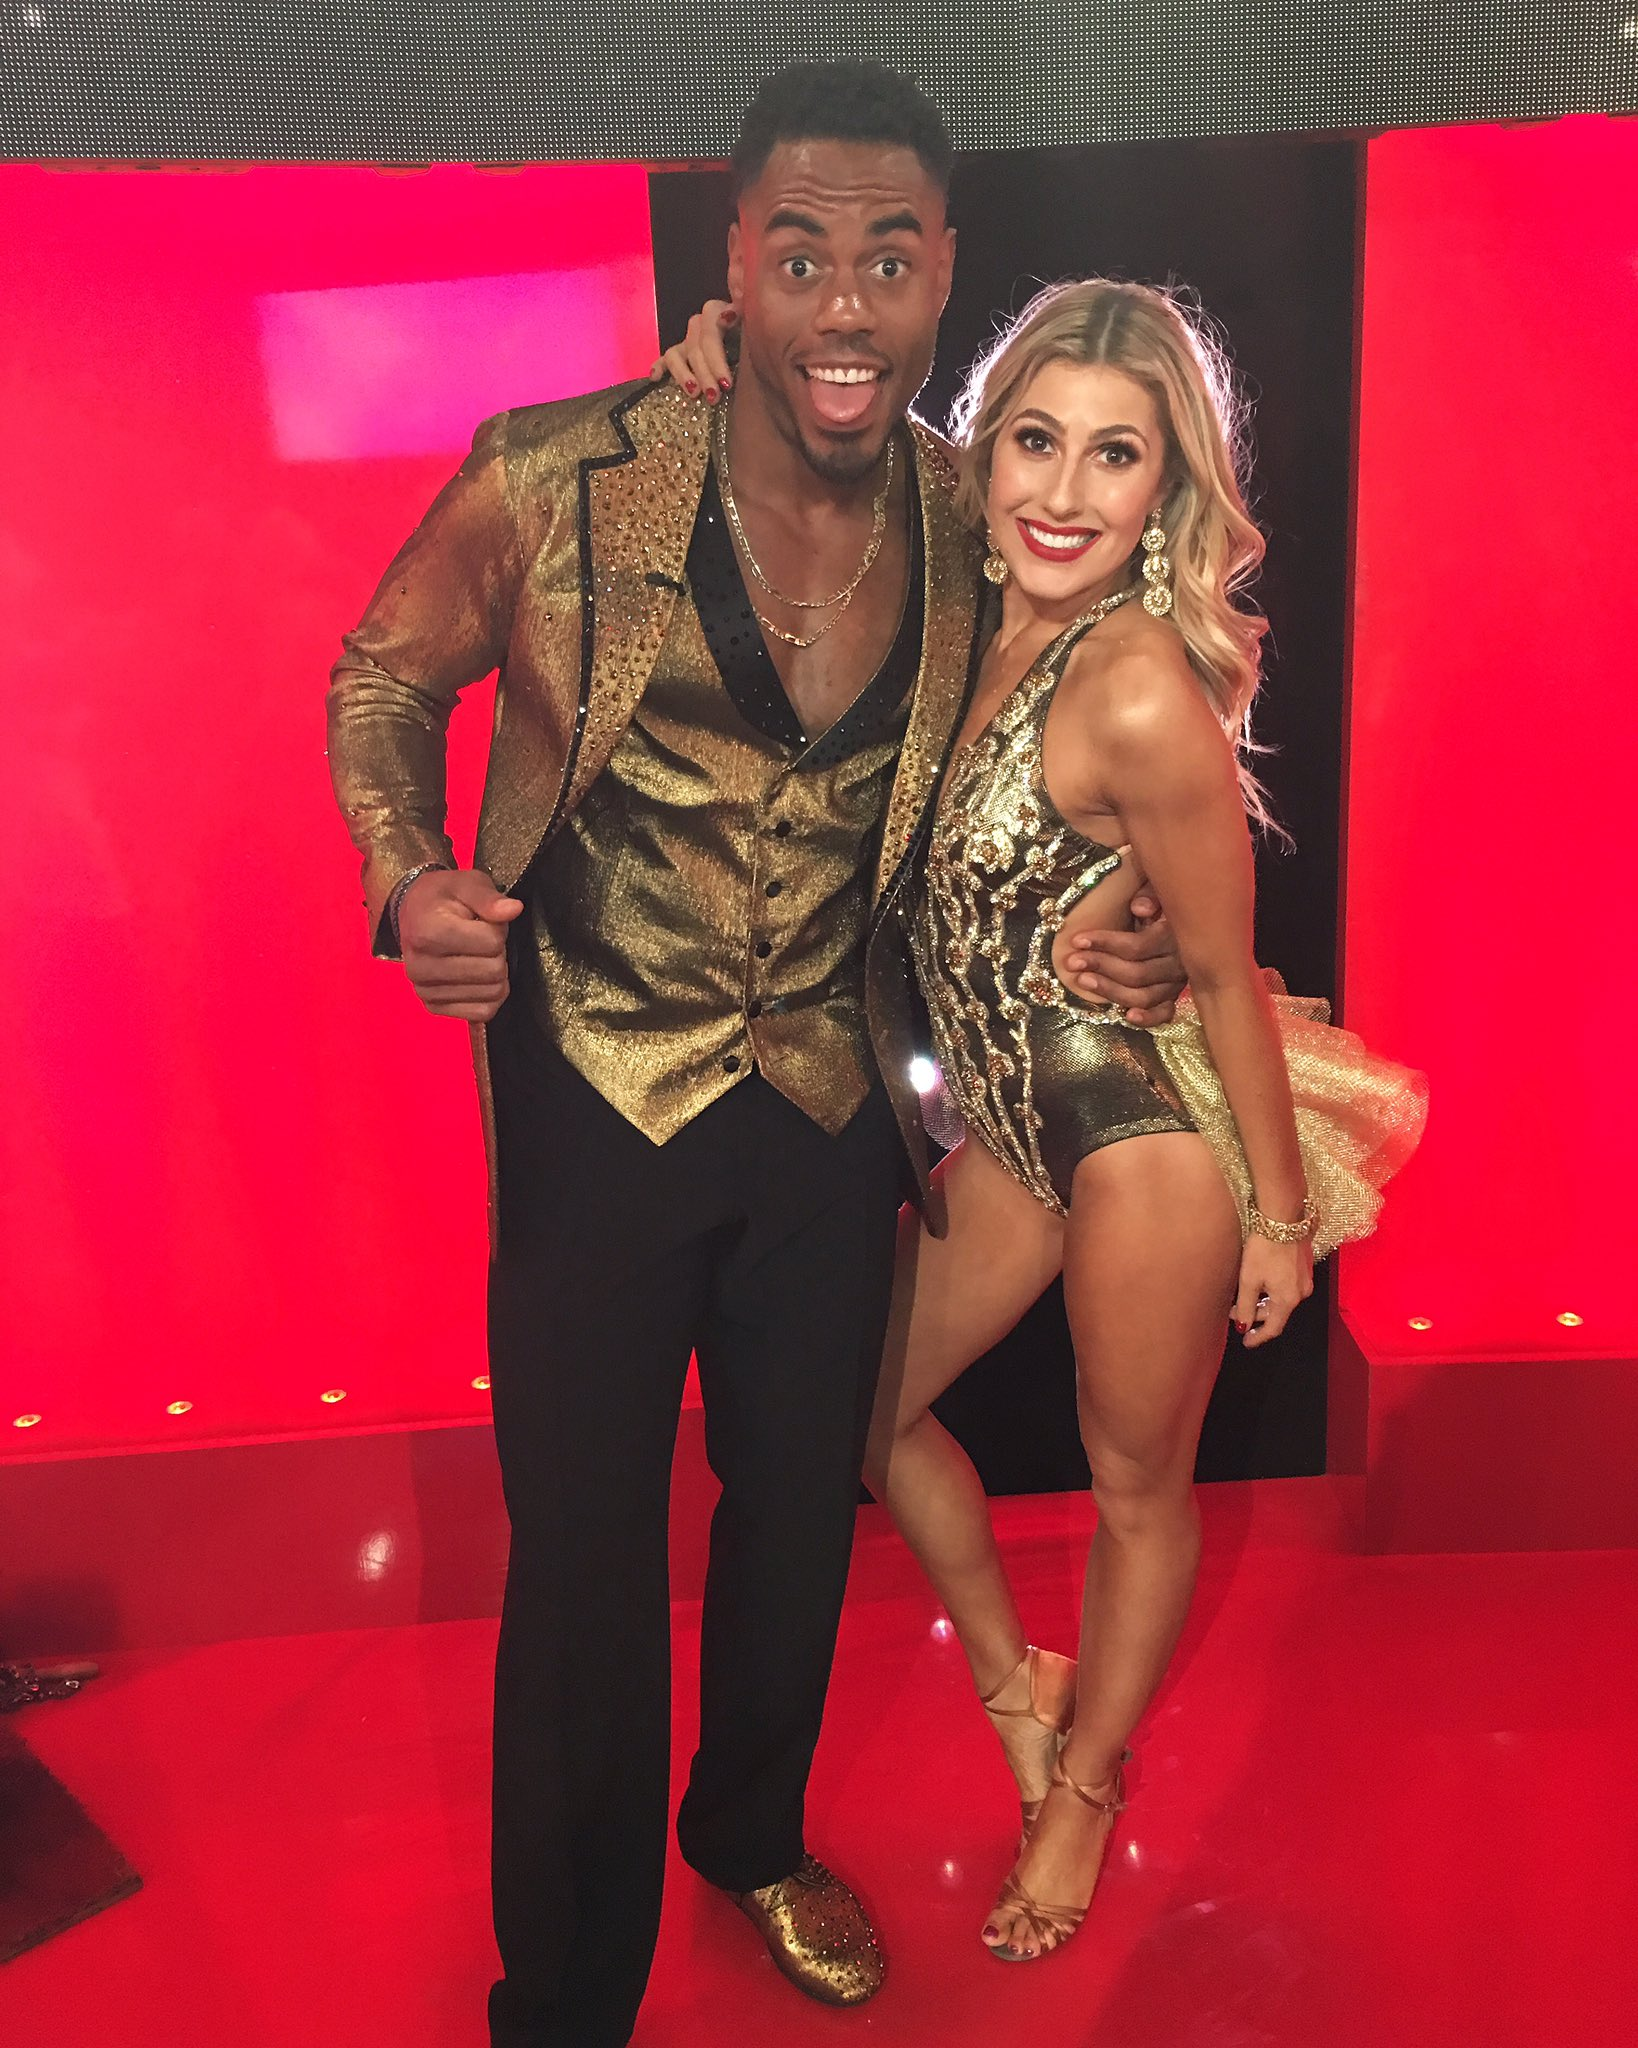 Almost show time! Tune in to catch @EmmaSlaterDance and I Cha Cha! @dancingabc #DWTs Vote #TeamShadSquad https://t.co/j2kMExKteJ